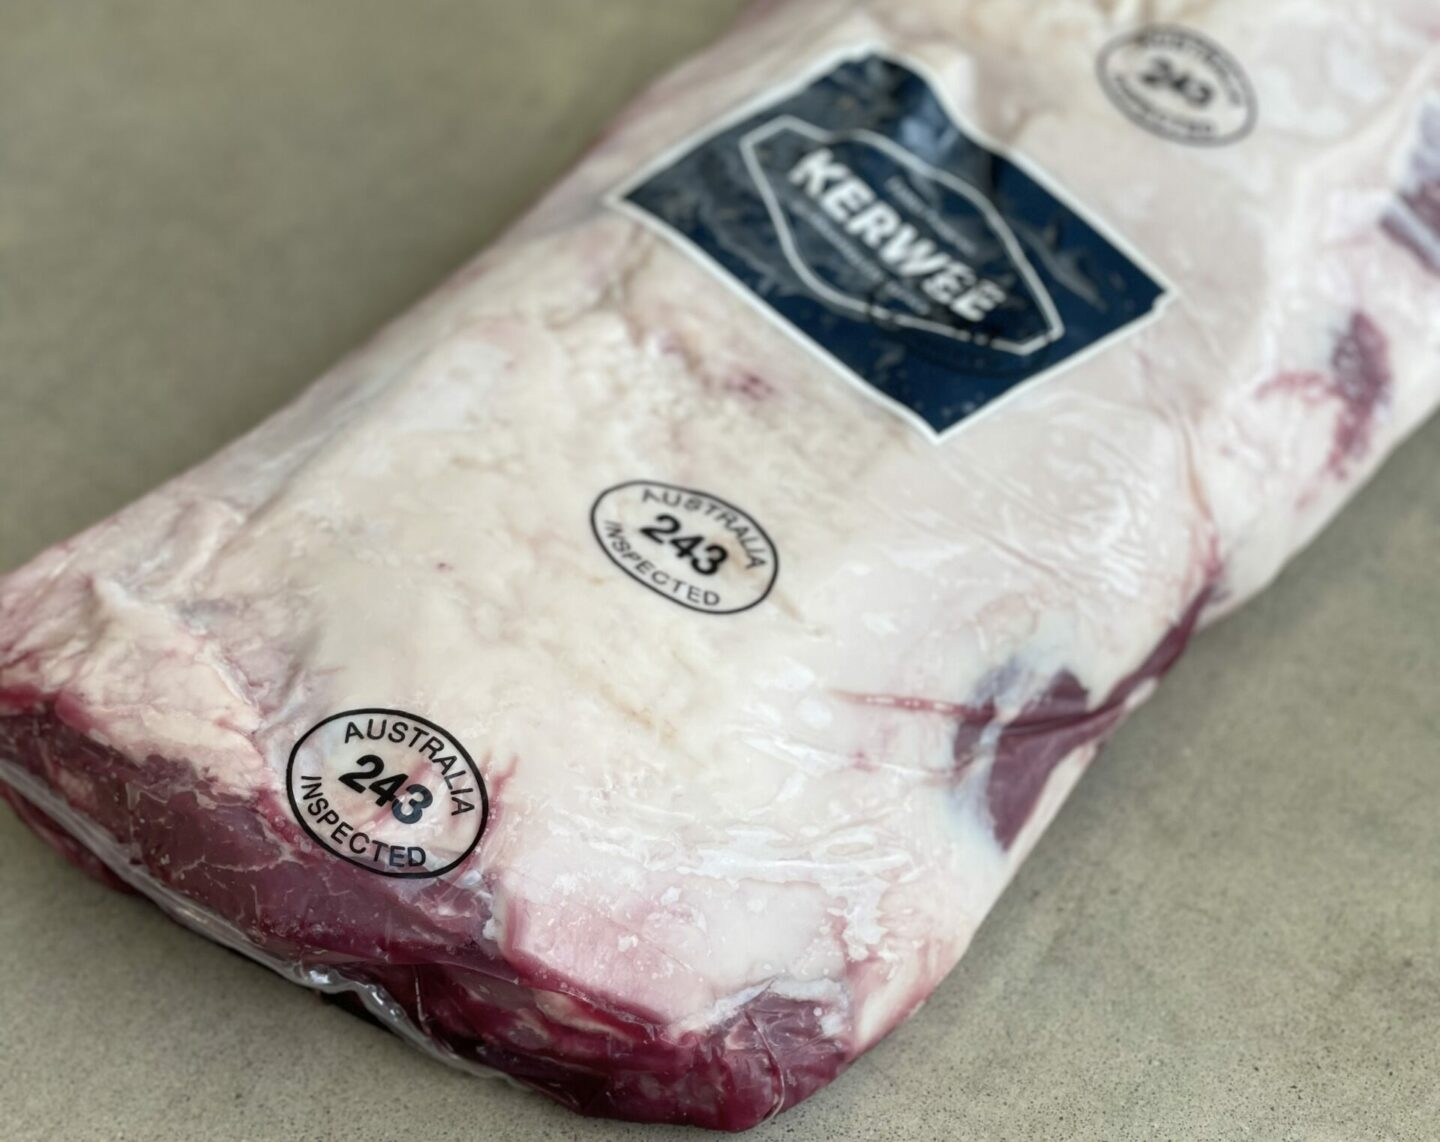 Kerwee Angus Beef from the Darling Downs